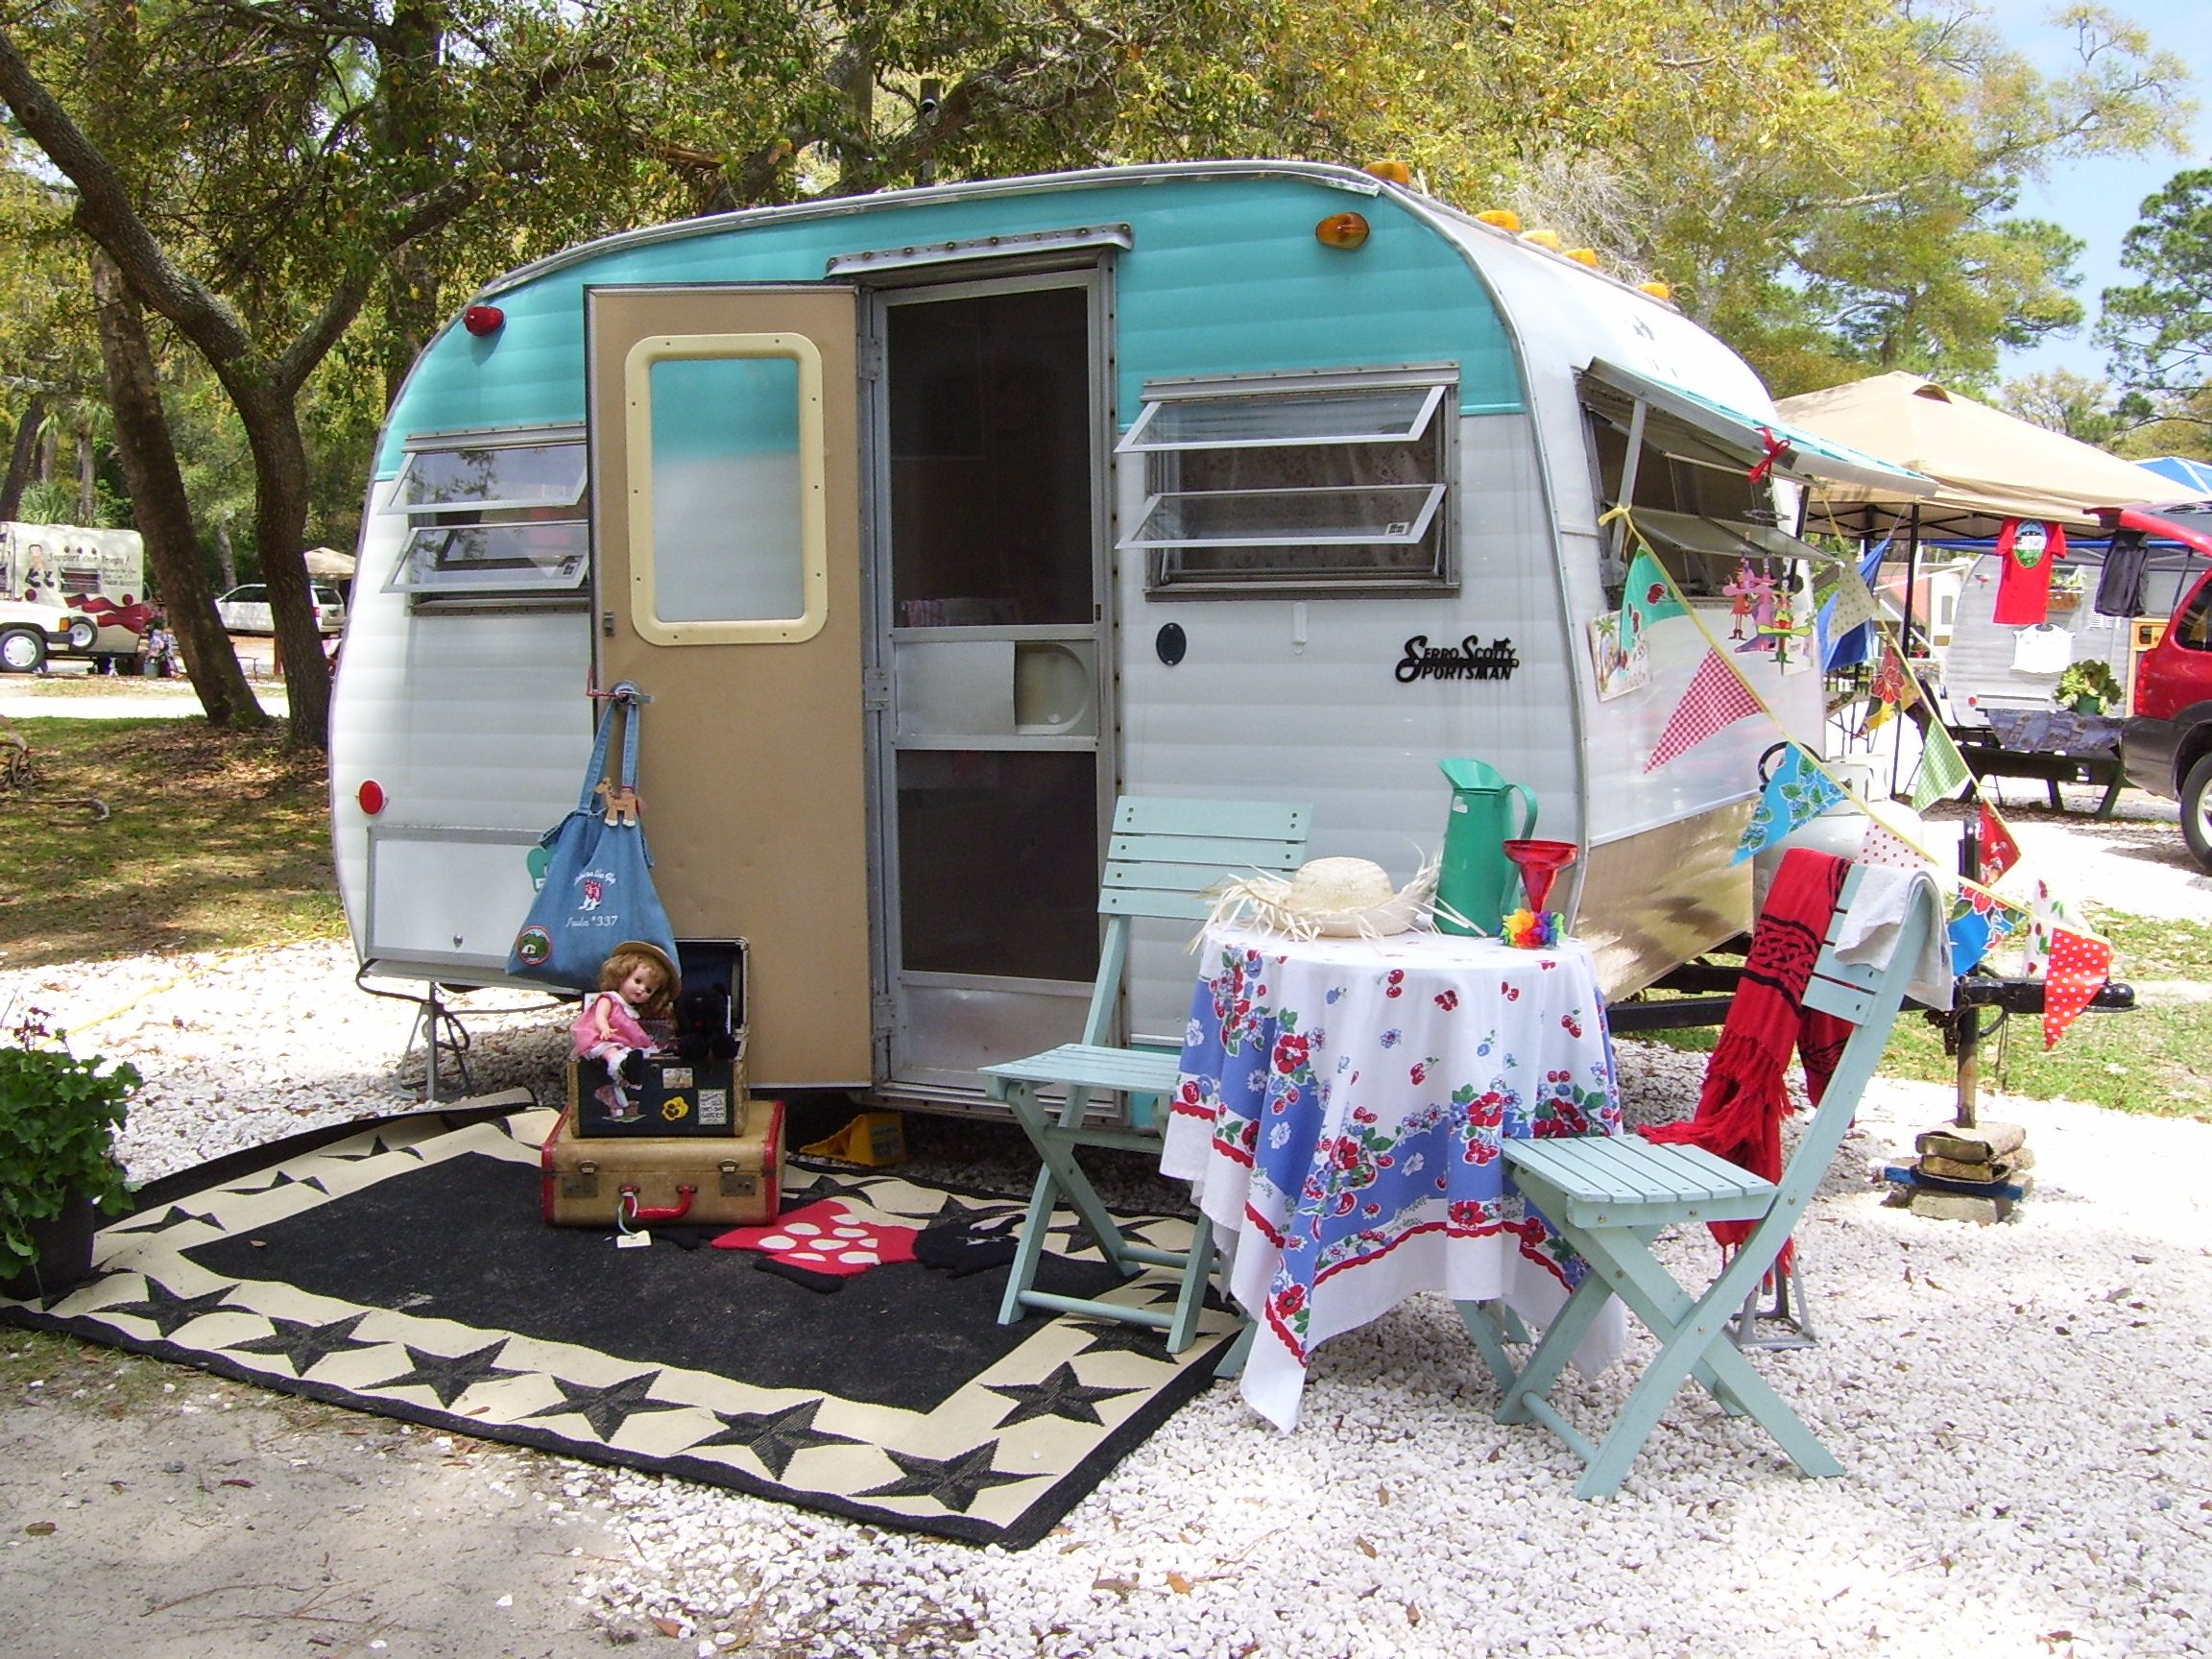 River S End Campground Tybee Island Ga Savannah Beach Sisters On The Fly